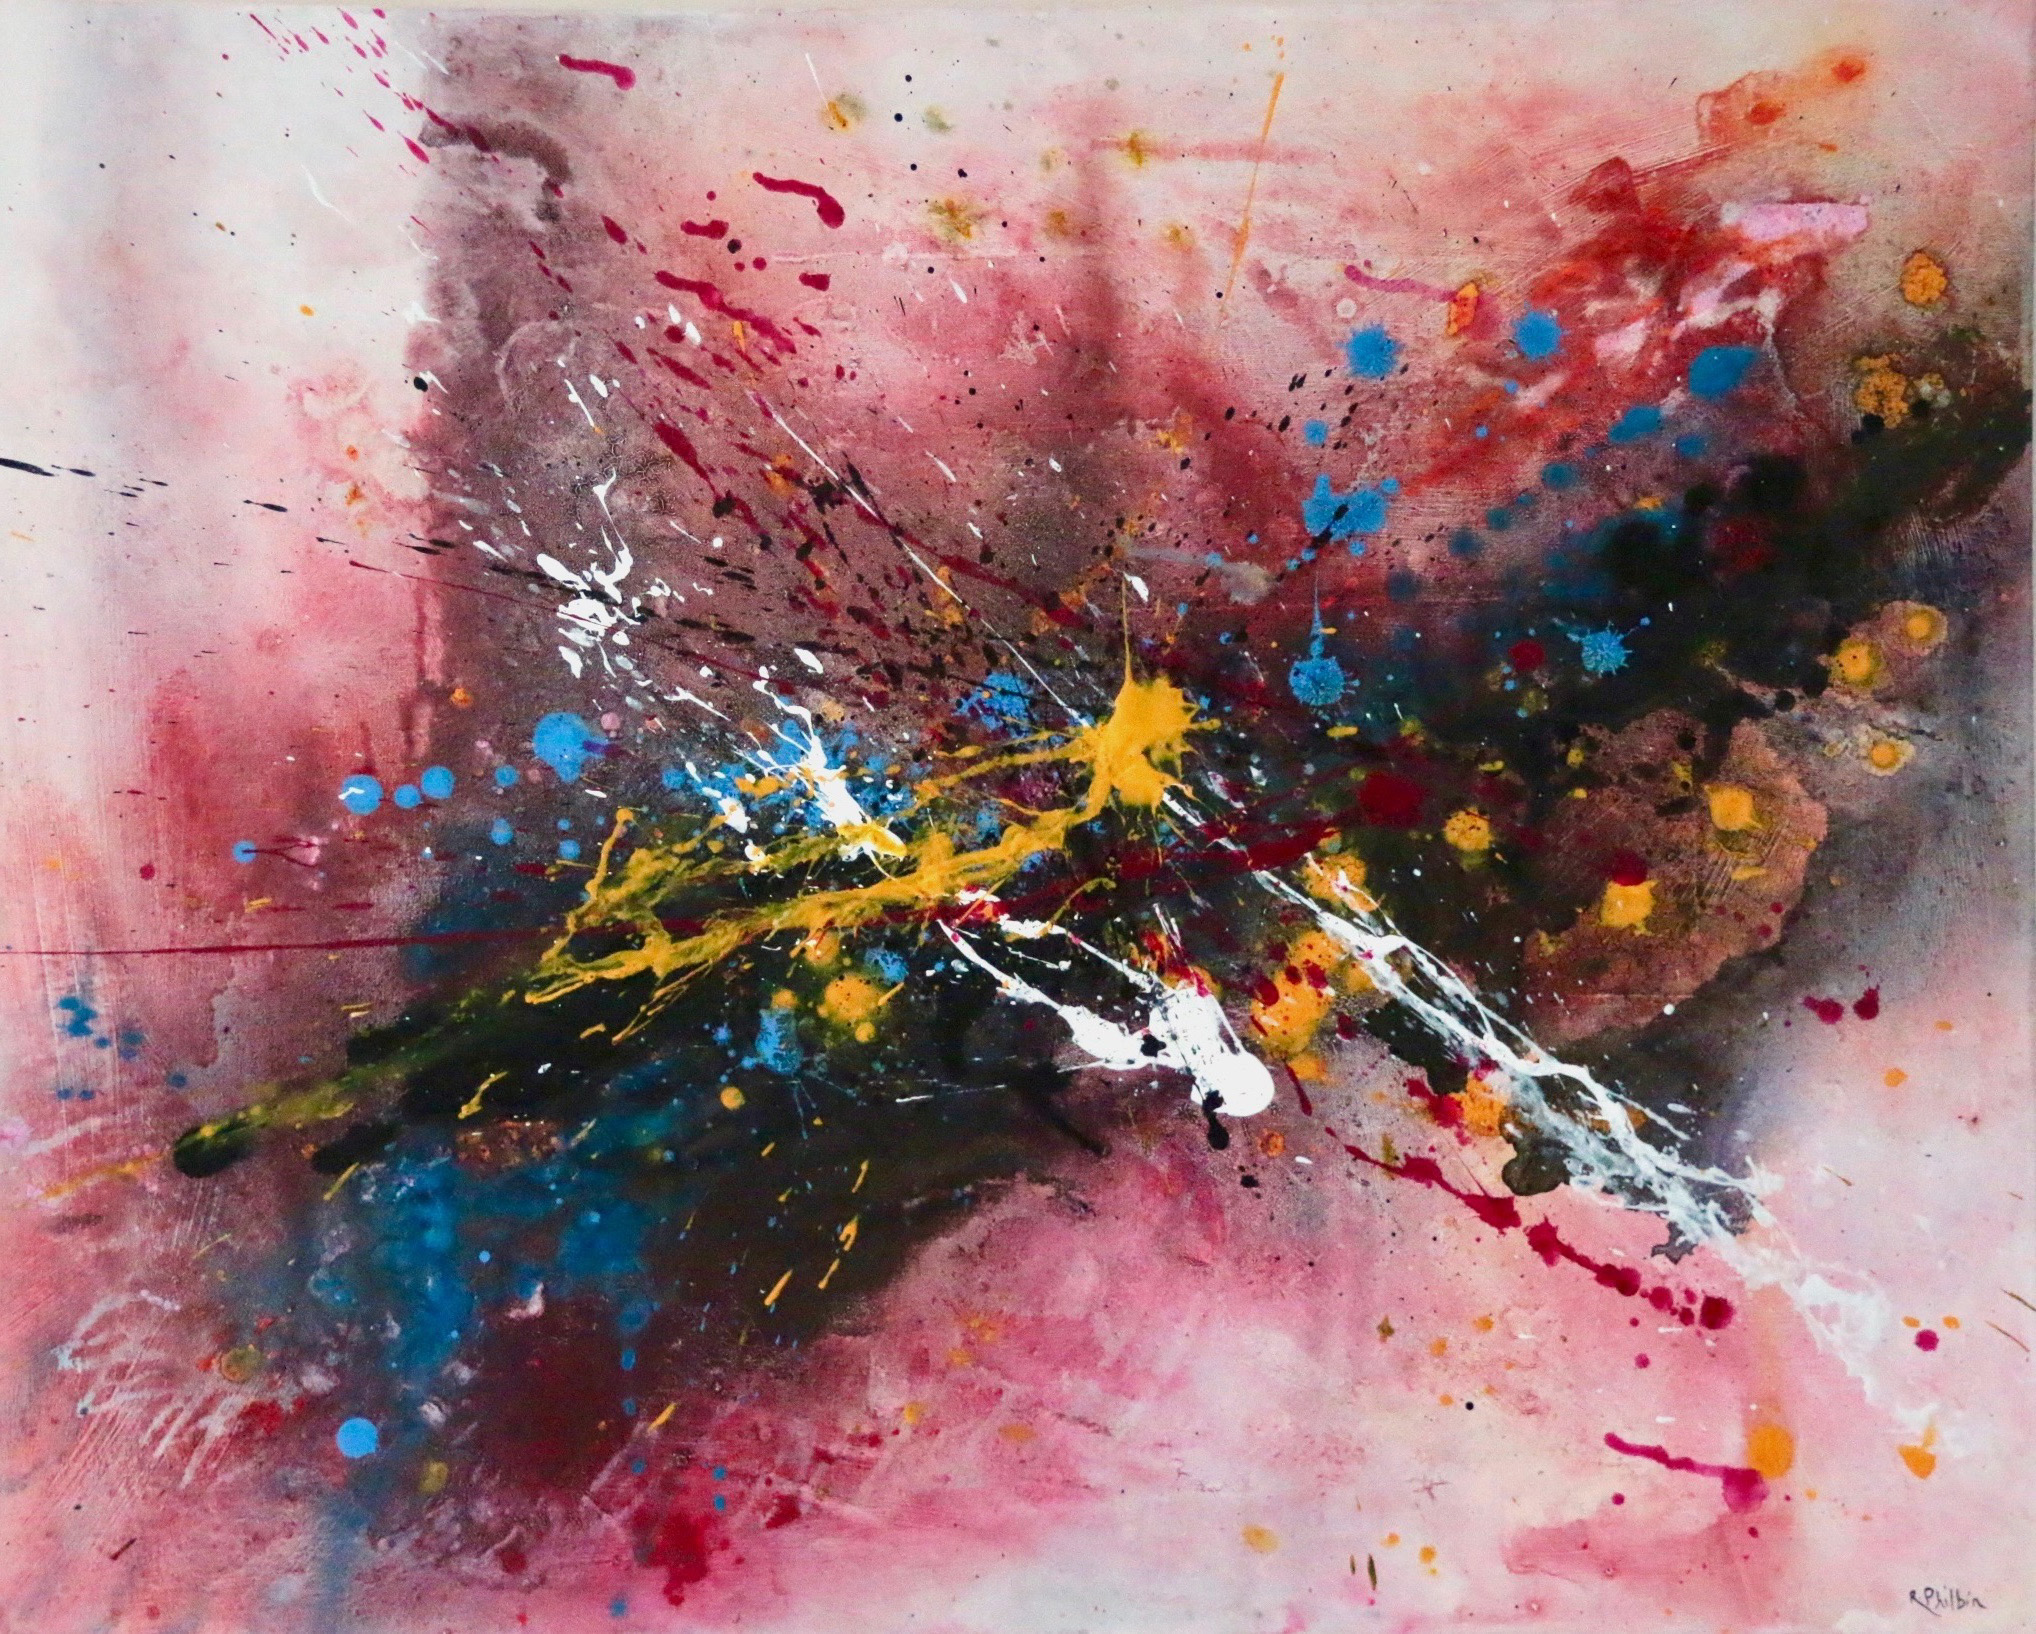 Rine_Philbin_Falling_in_Love_acrylic_on_canvas_brush_scrapers_spraying_throwing_paint_60x75cm_2019